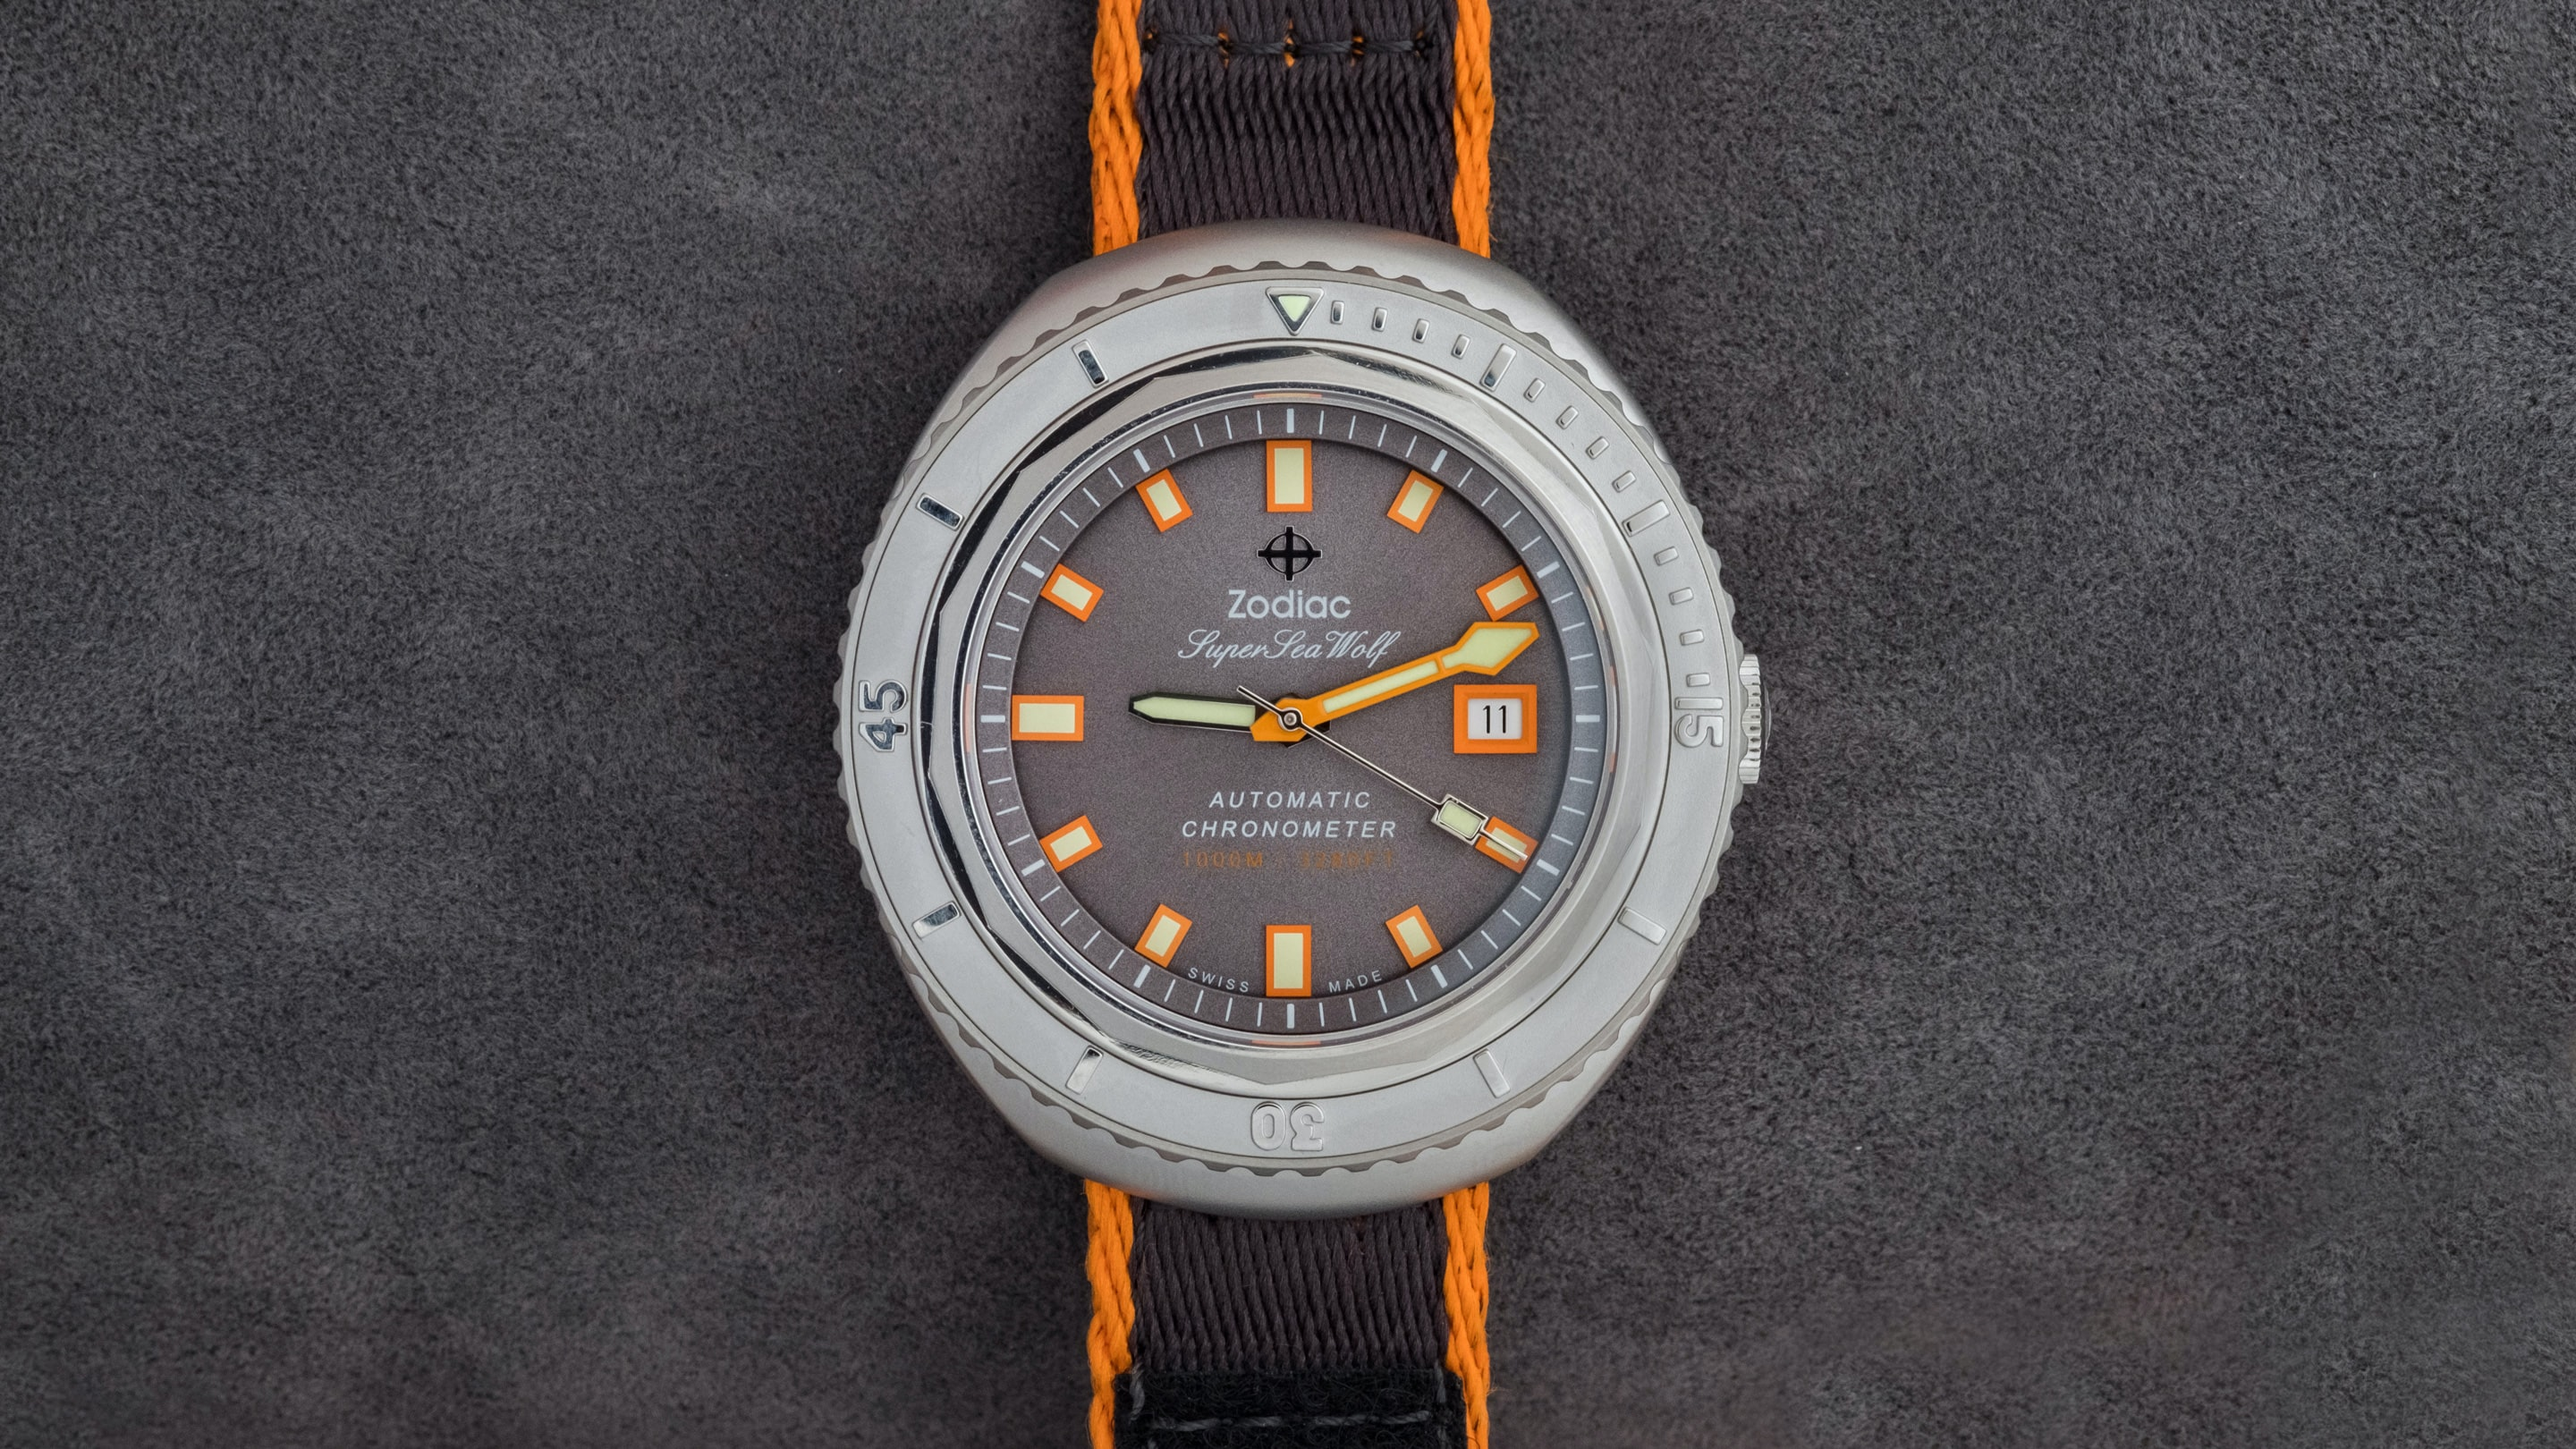 H dscf8761.jpg?ixlib=rails 1.1  Introducing: The Zodiac Super Sea Wolf 68 Limited Edition (Live Pics & Pricing) H DSCF8761